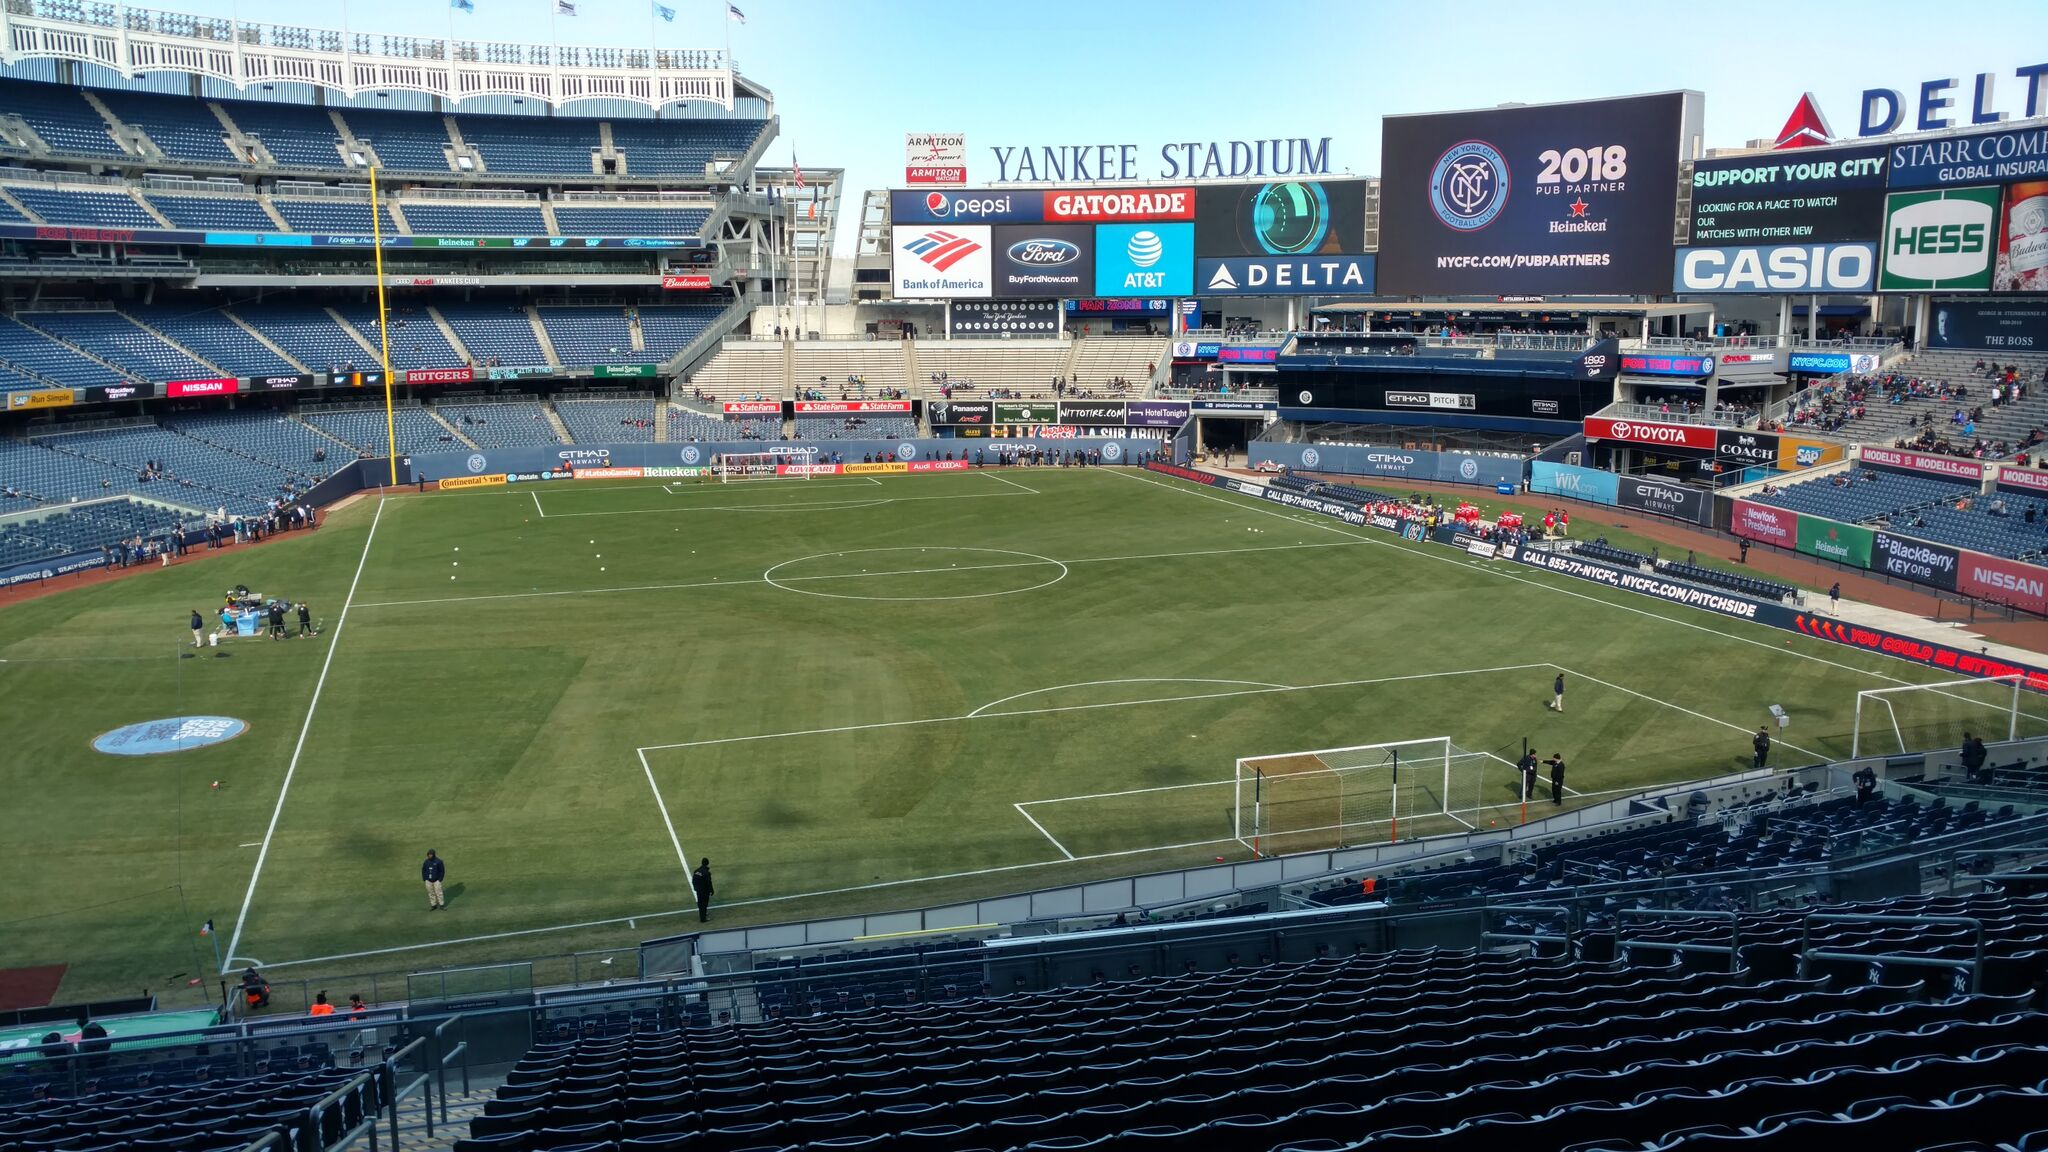 62c2be8dc7a29 Yankee Stadium NYCFC End Pitch View